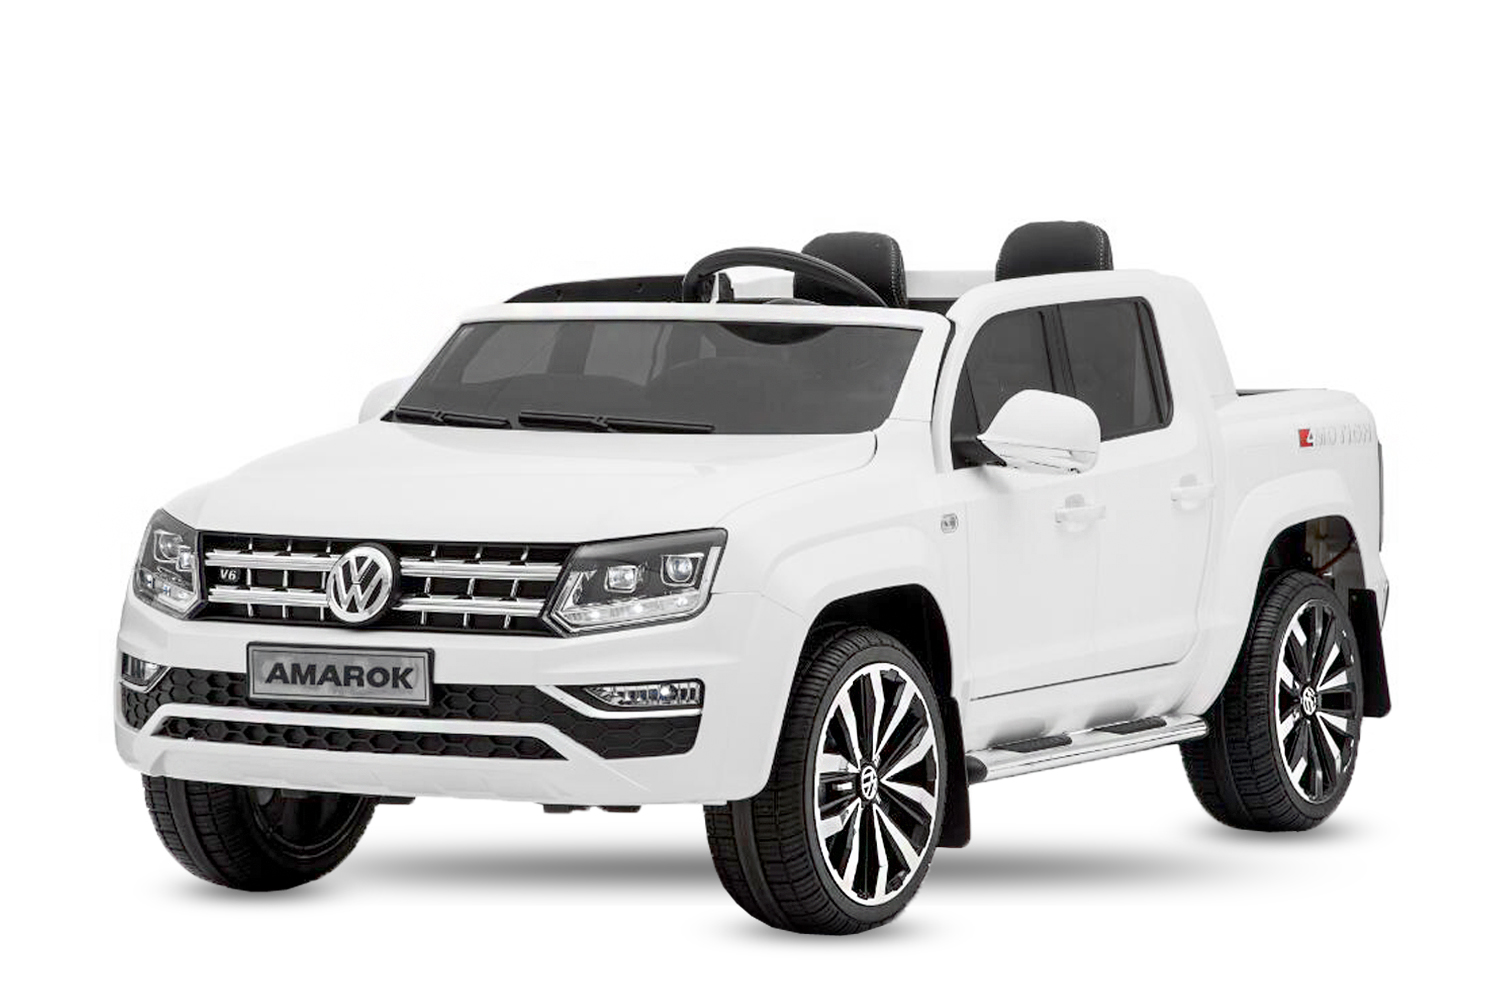 menila gmbh lizenz vw amarok kinder elektro auto 2. Black Bedroom Furniture Sets. Home Design Ideas